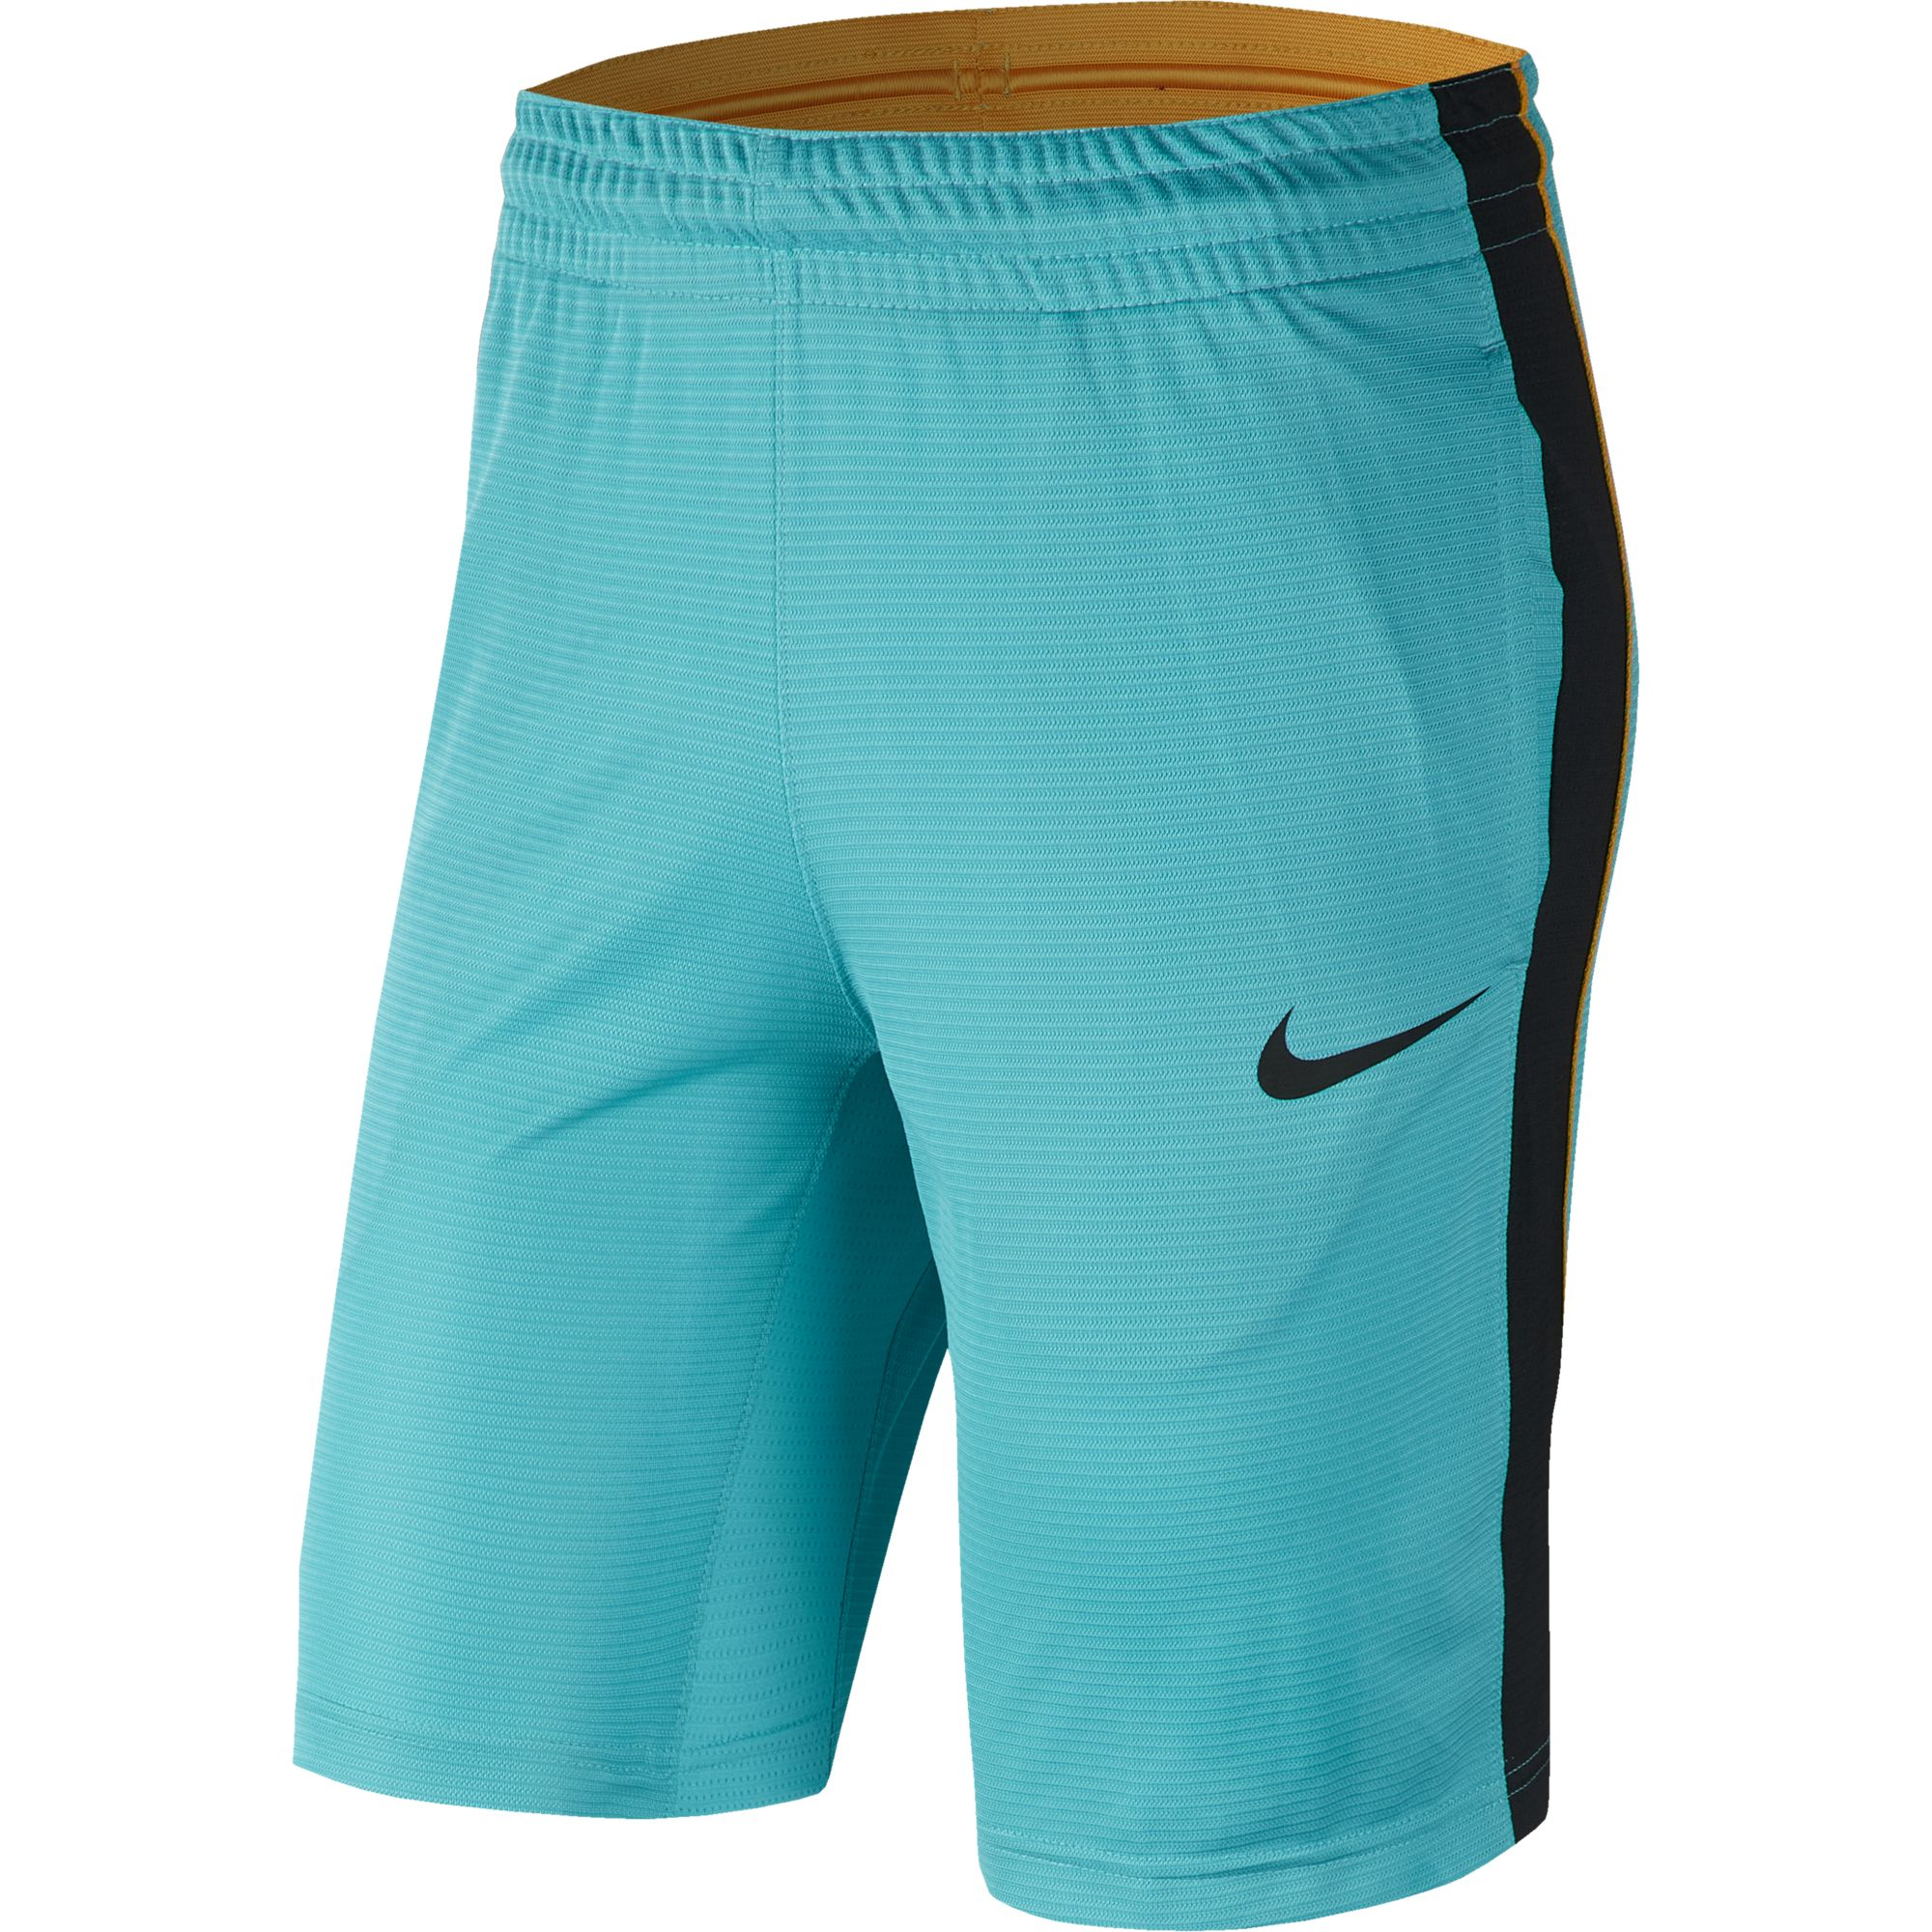 Nike Womens Basketball Dry Shorts - NK-869472-309